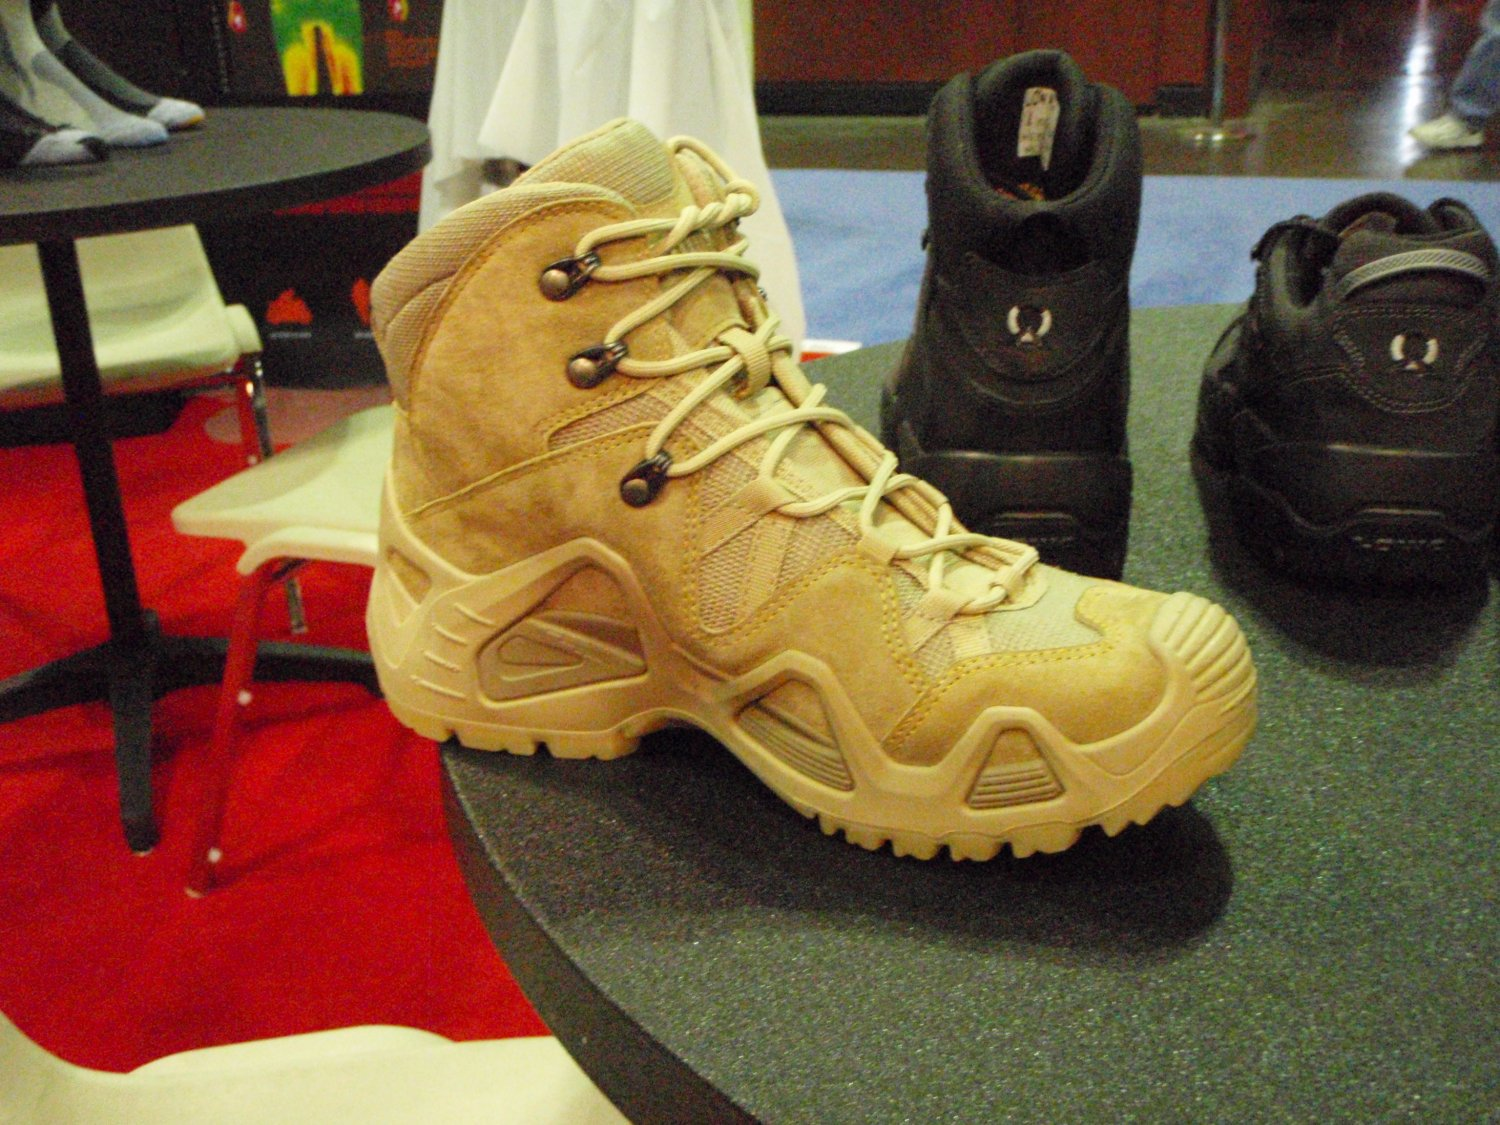 LOWA Tactical Boots Introduces LOWA Desert Mid Tactical Boot at SHOT